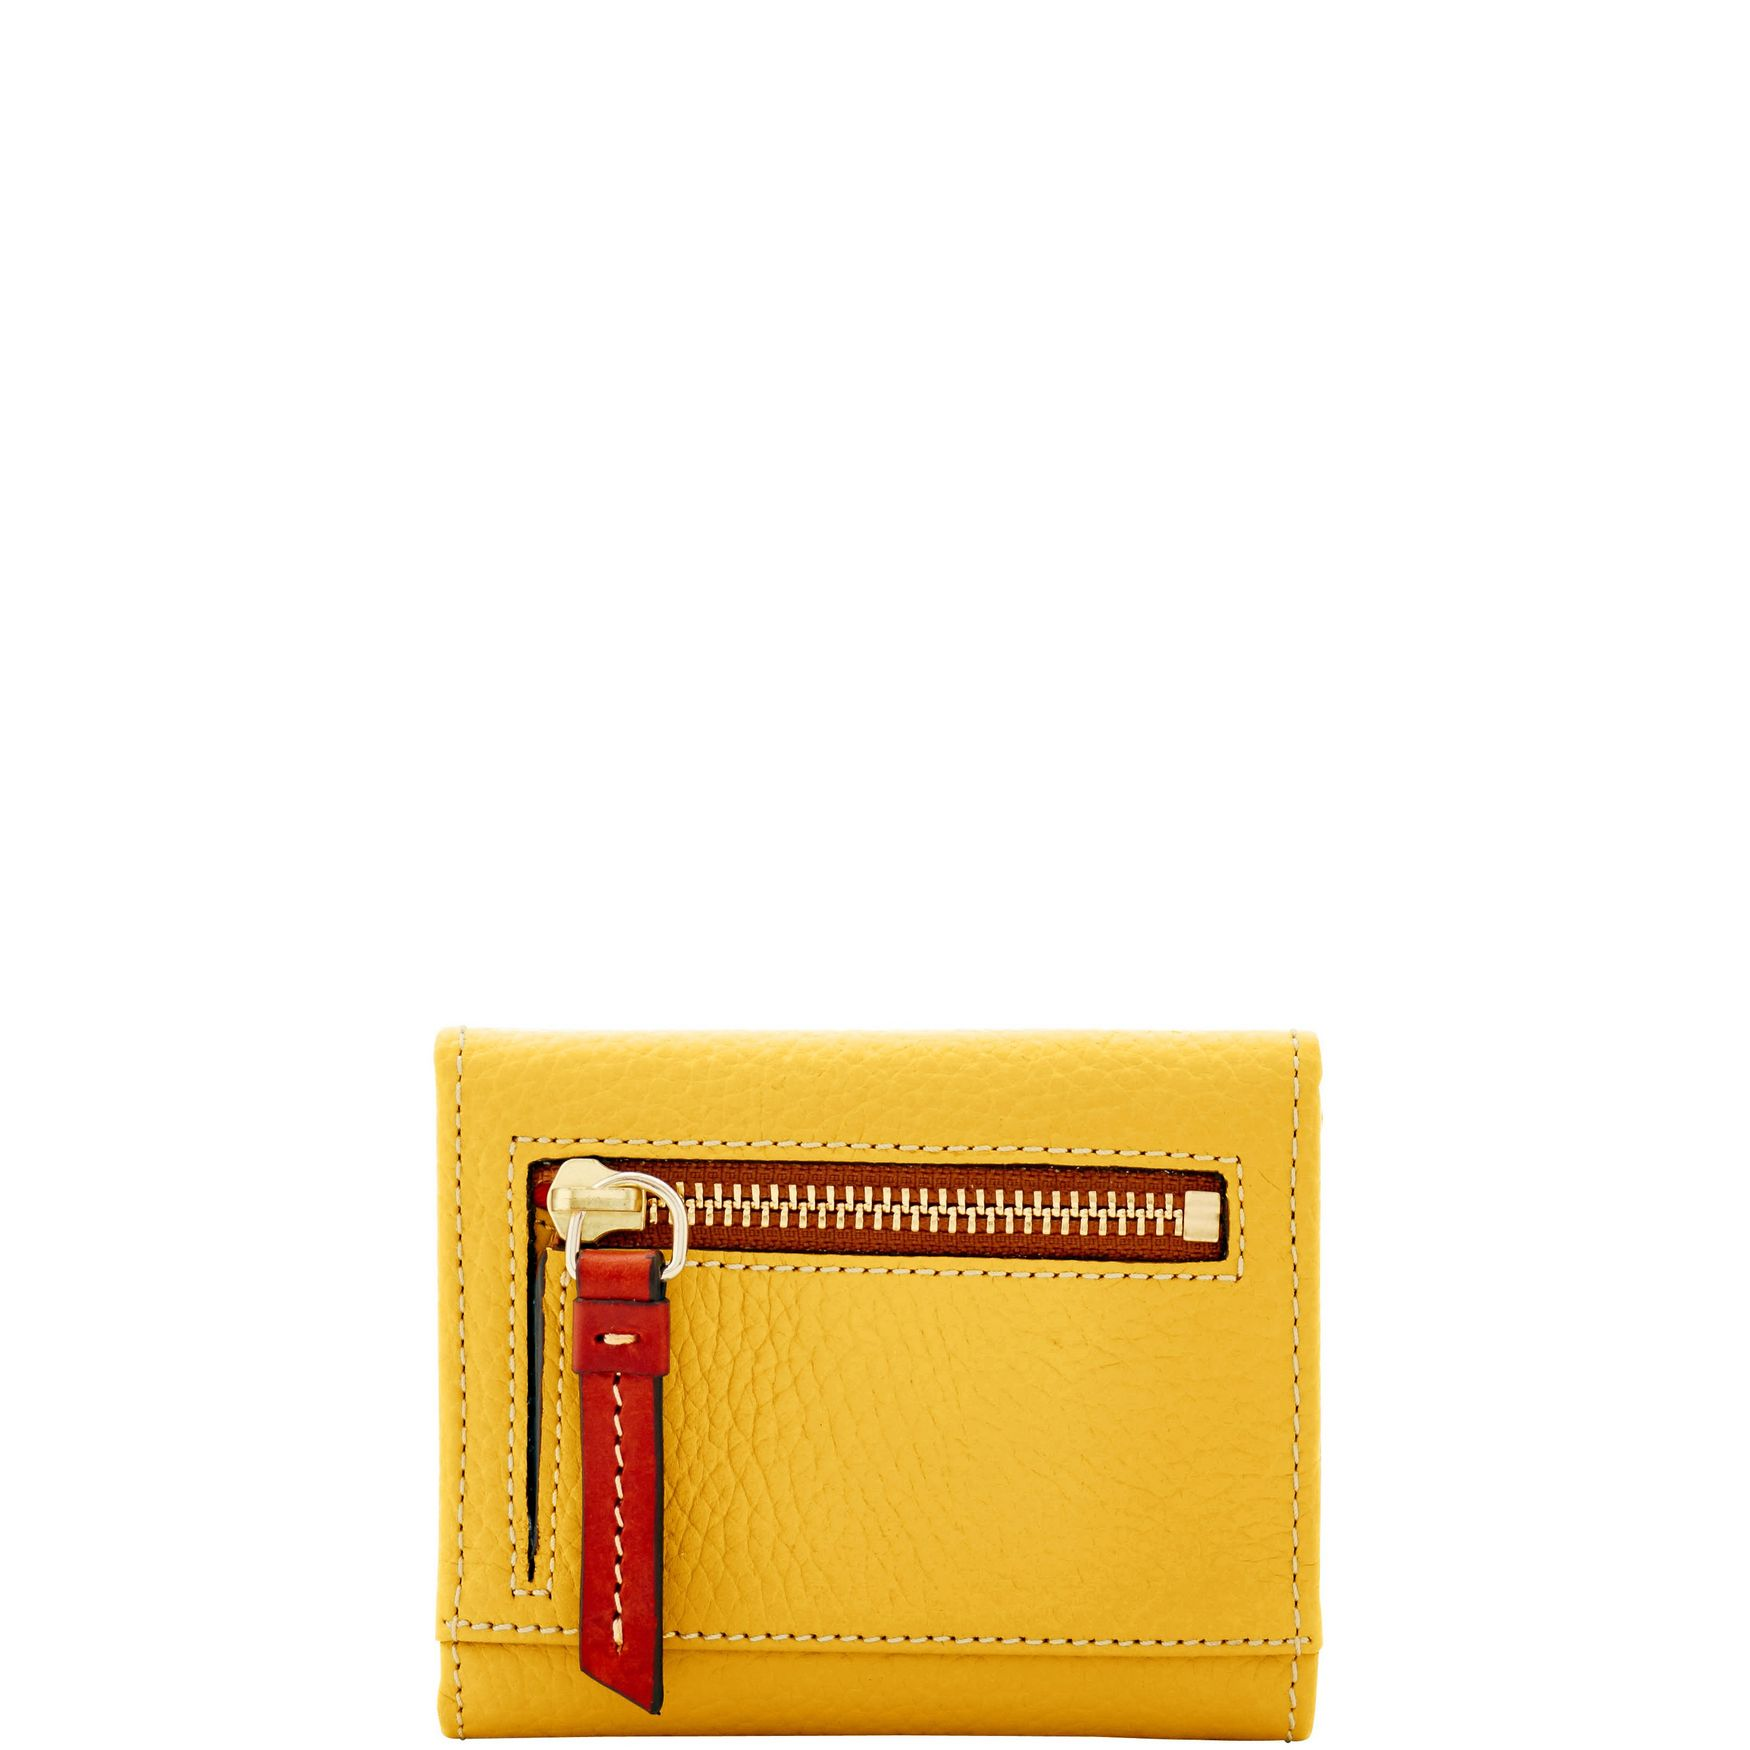 Dooney-amp-Bourke-Pebble-Grain-Small-Flap-Wallet thumbnail 26